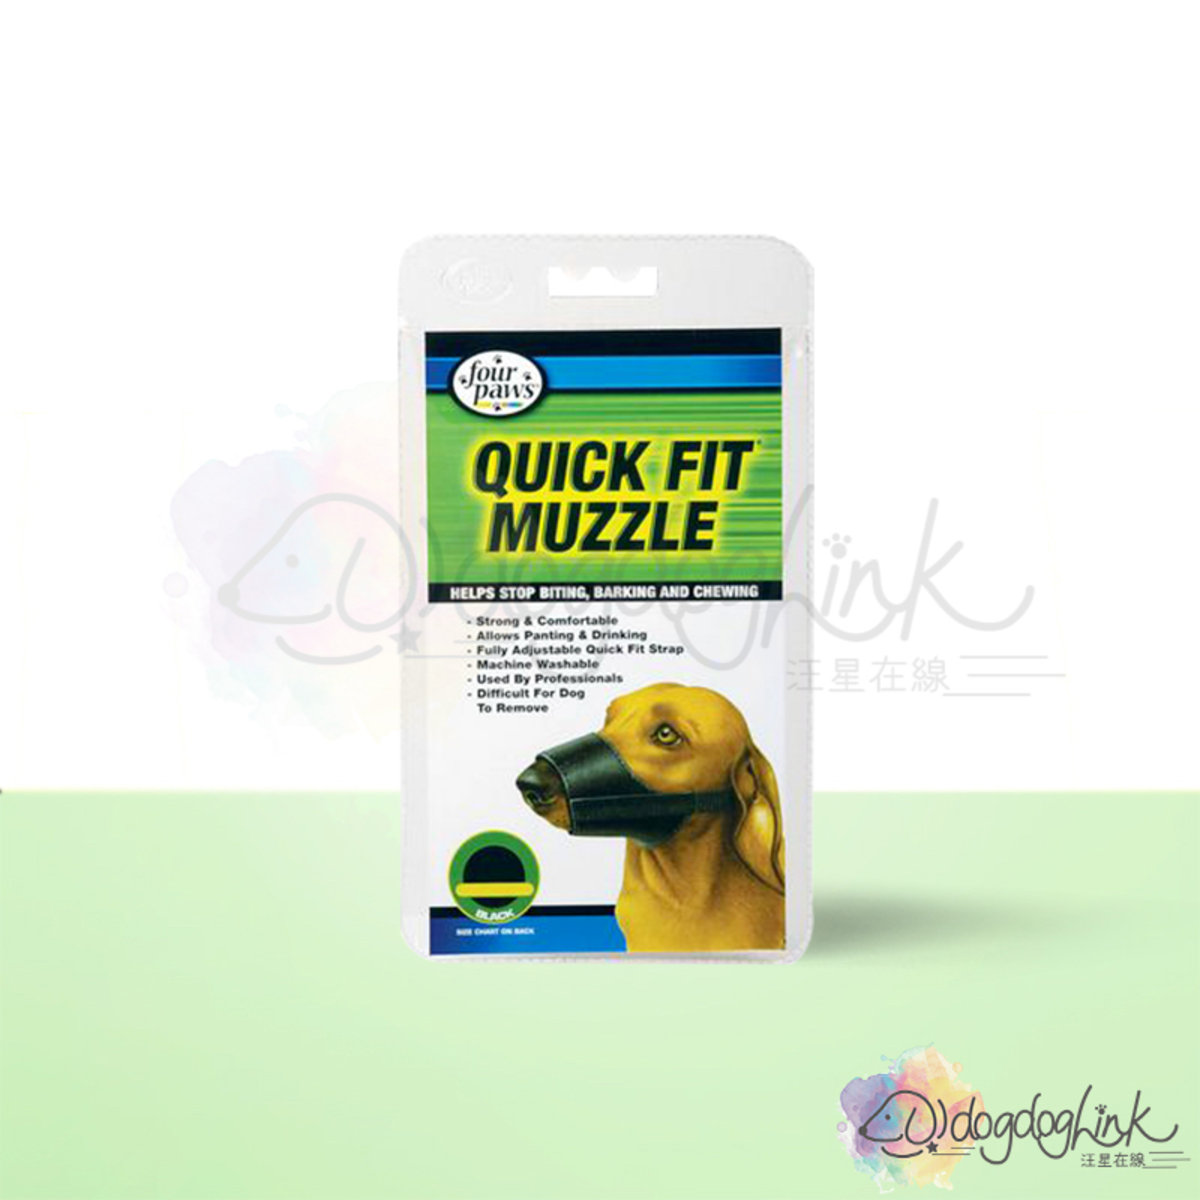 Quick Fit Muzzle 5 (Fits 8.25 Snout)